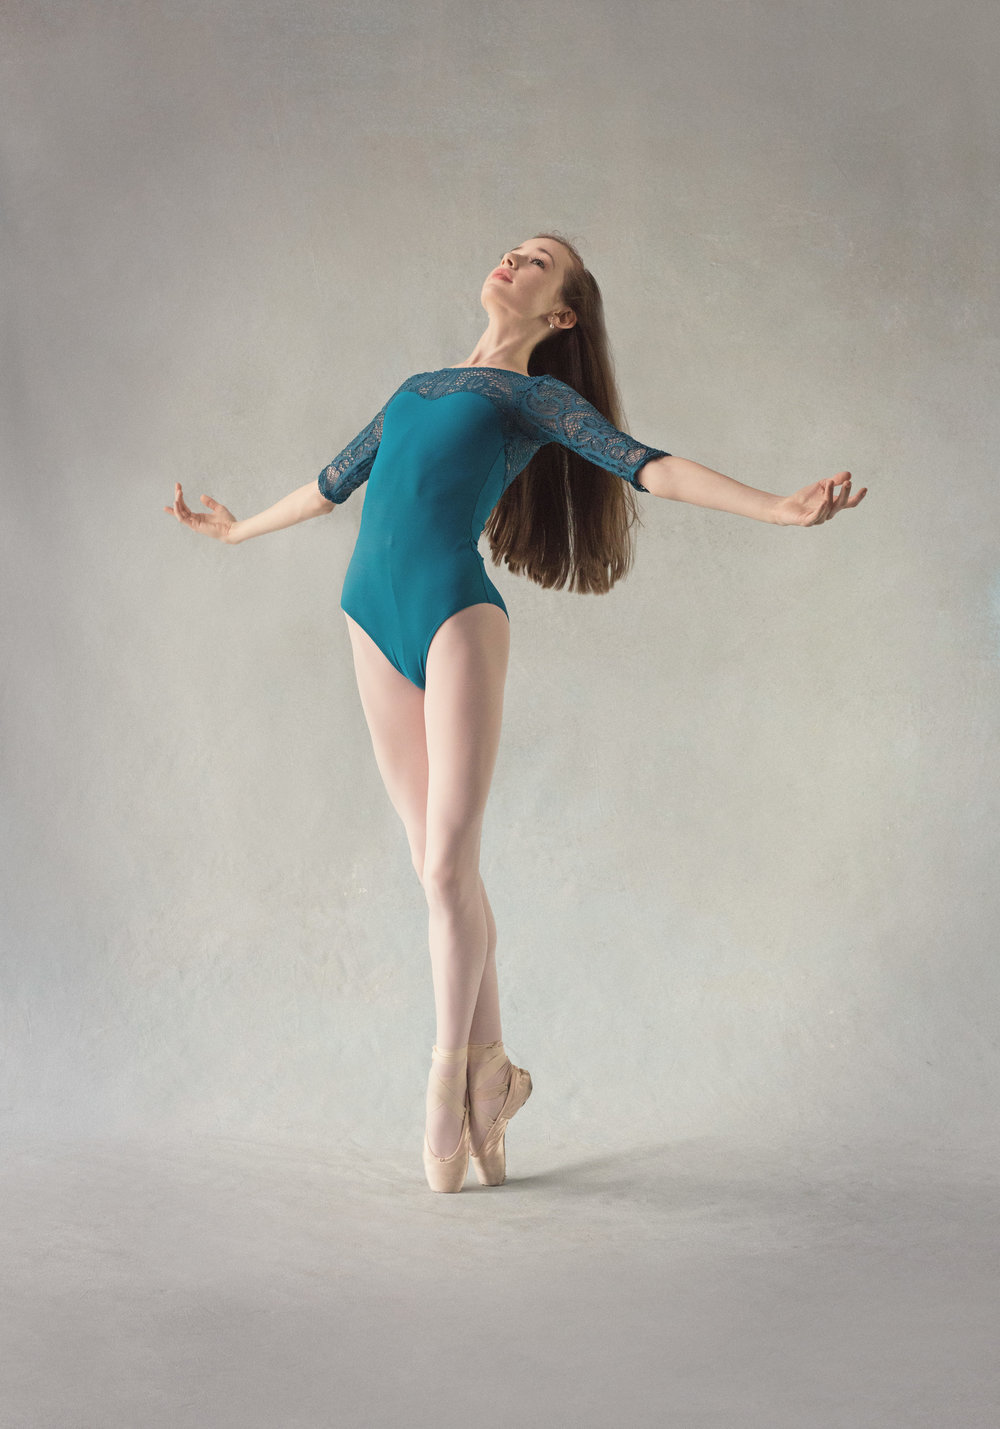 Young Dancer in Pointe Shoes